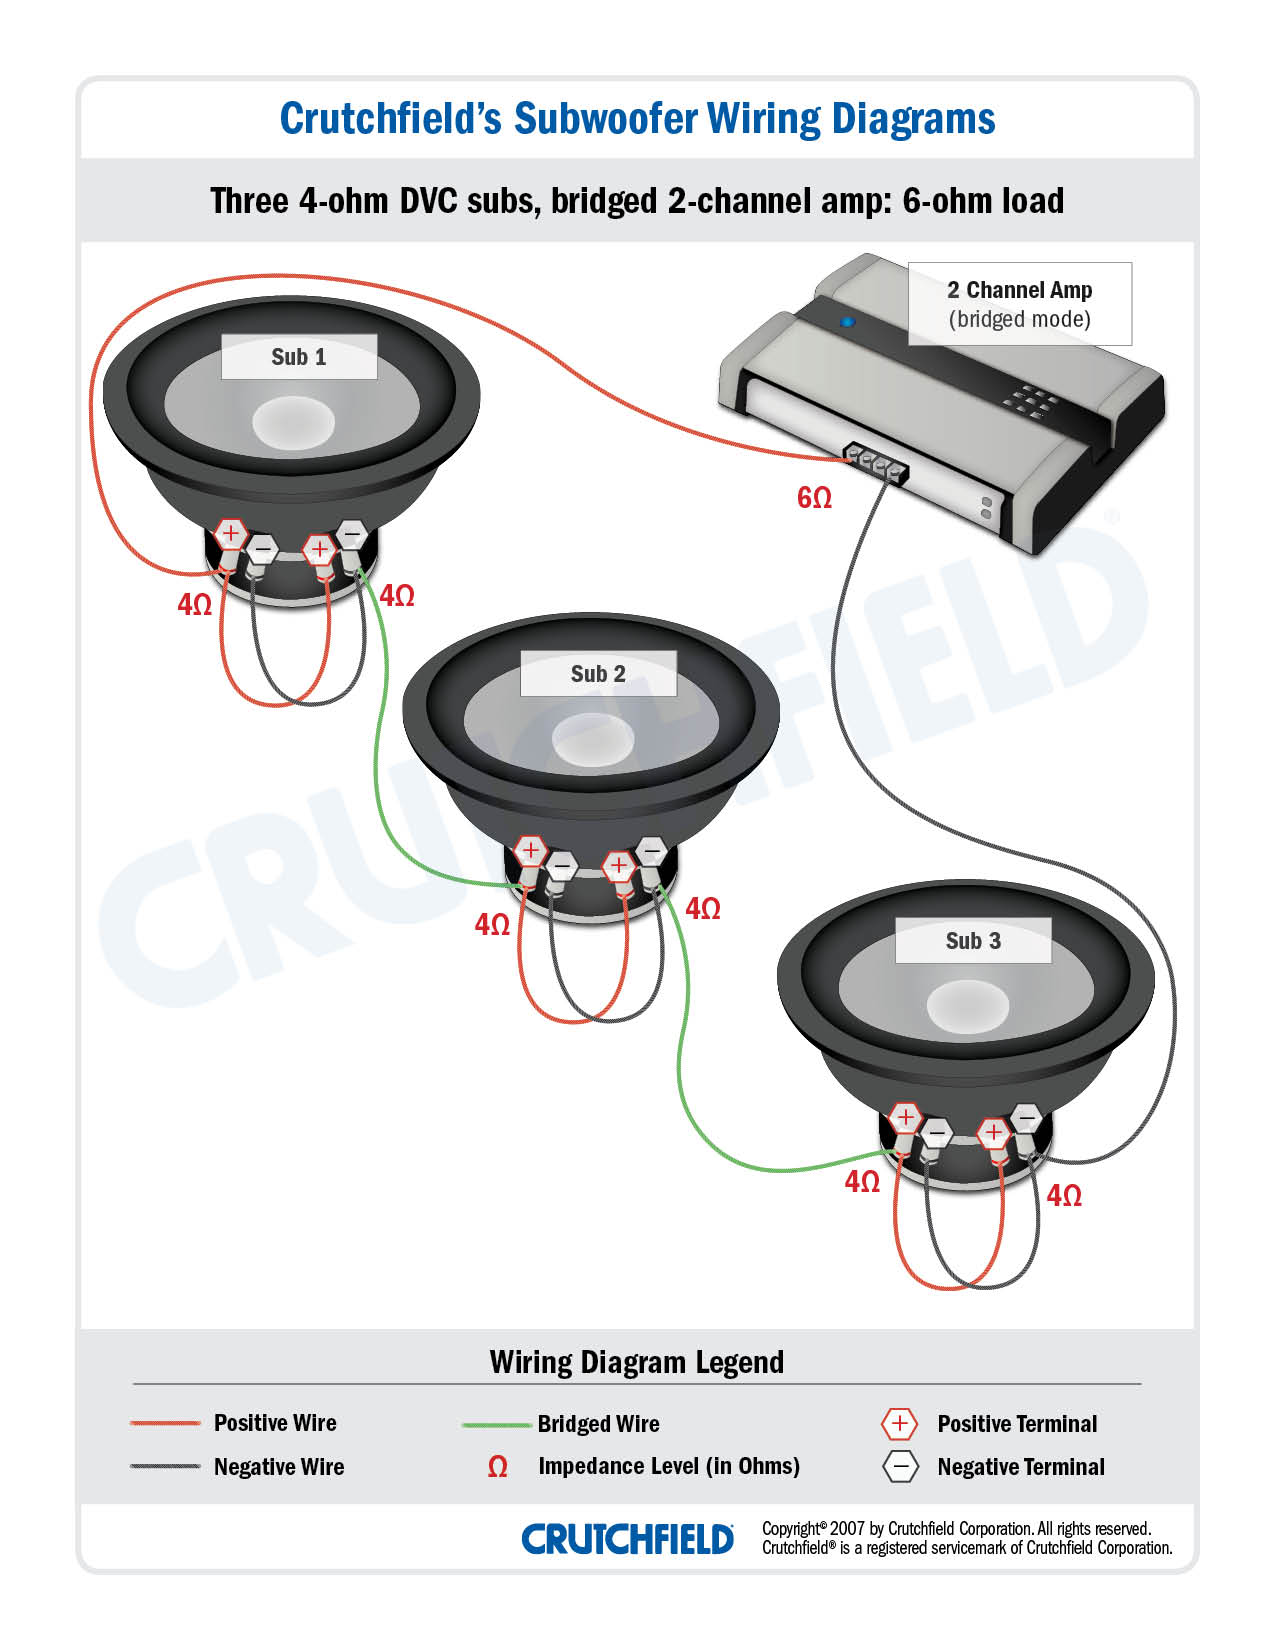 3 DVC 4 ohm 2 ch subwoofer wiring diagrams kicker l7 wiring diagram 4 ohm at cos-gaming.co